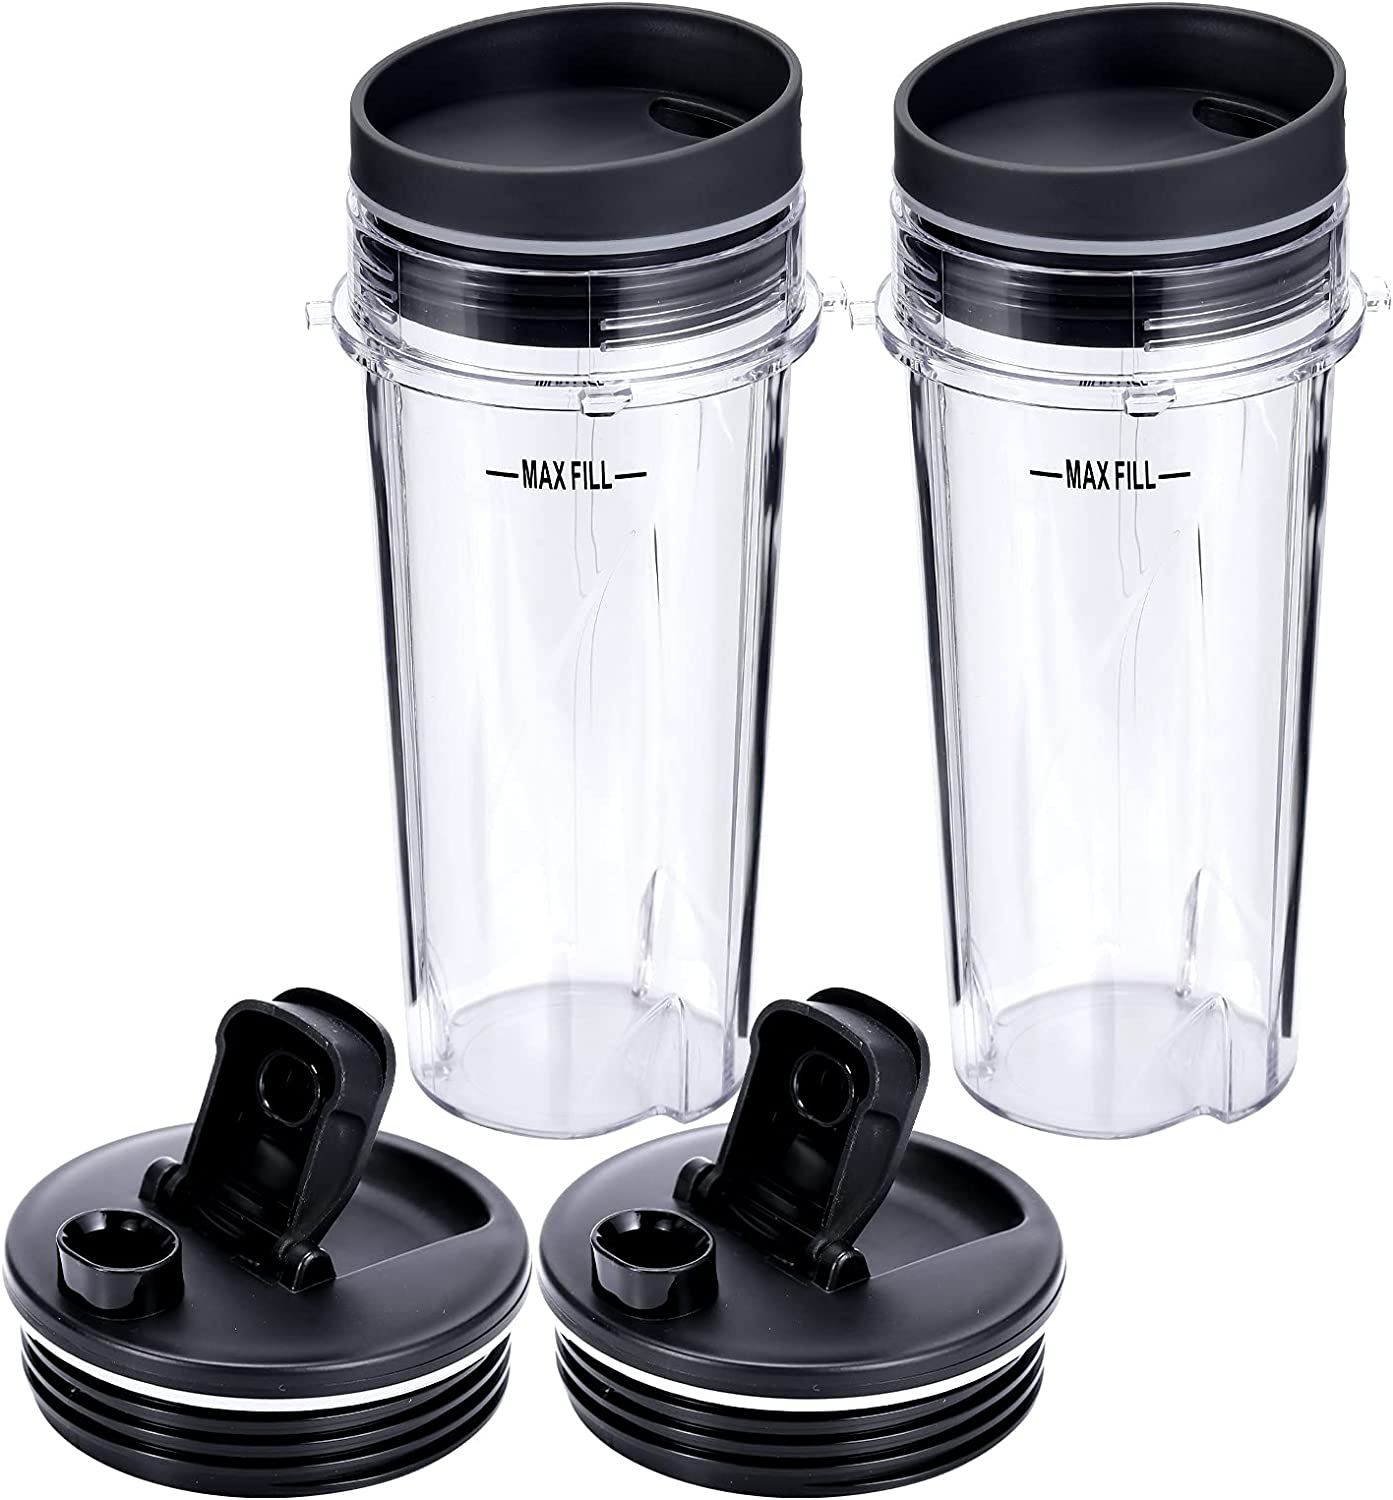 2pcs 16oz Blender Cup Set Compatible with Ninja Replacement Parts Single Serve Cup with Lid and Seal Lid Compatible with Nutri Ninja Series for QB3000 BL770 BL780 BL660 BL740 BL810 Blenders